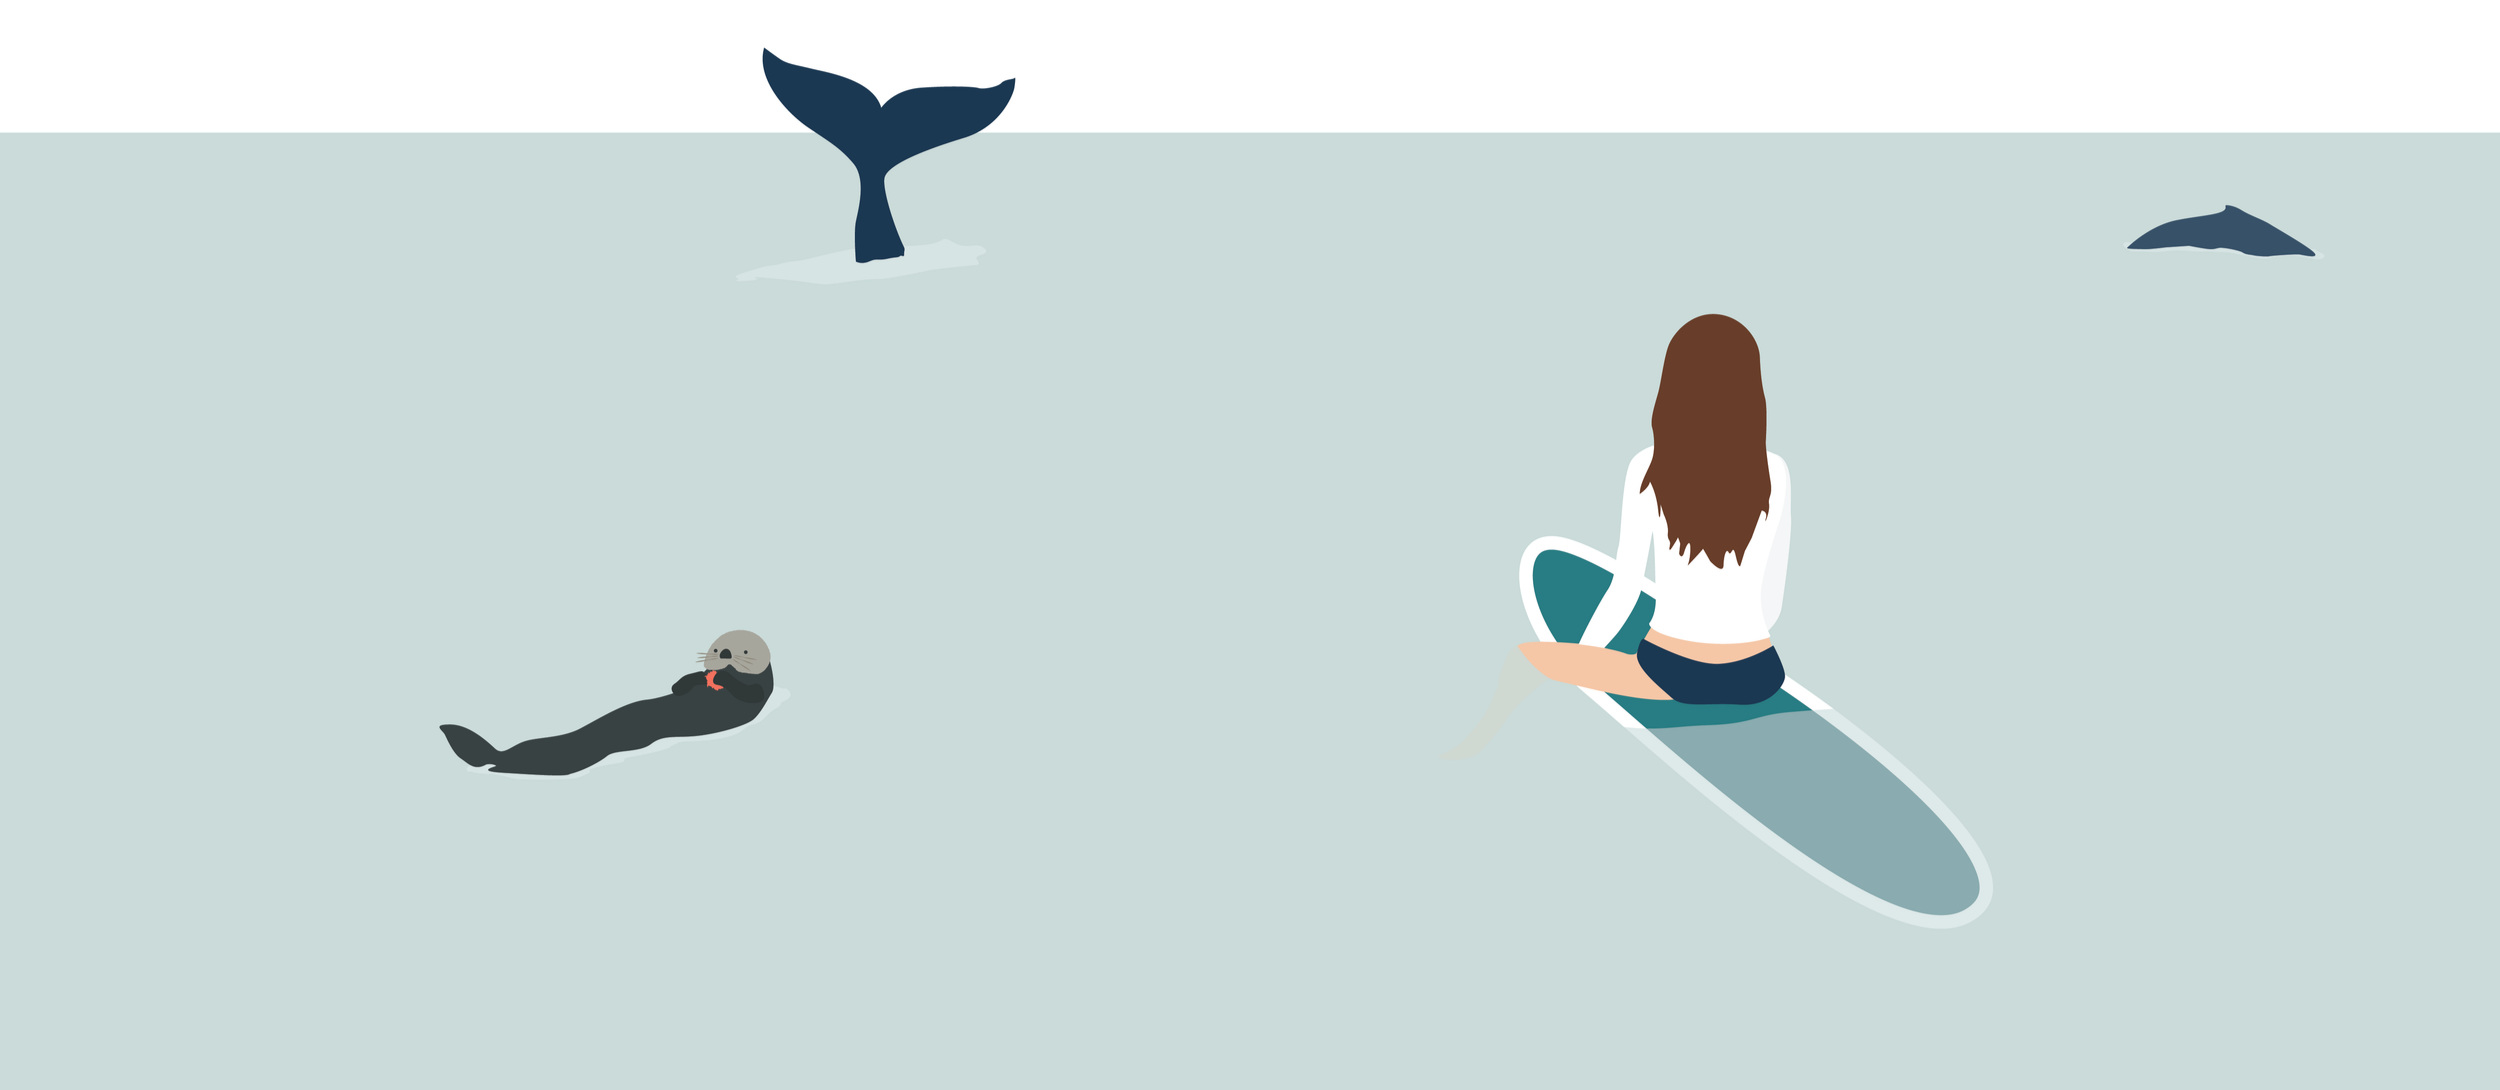 BaleenDesign_illustration_surfingwithwhales.png